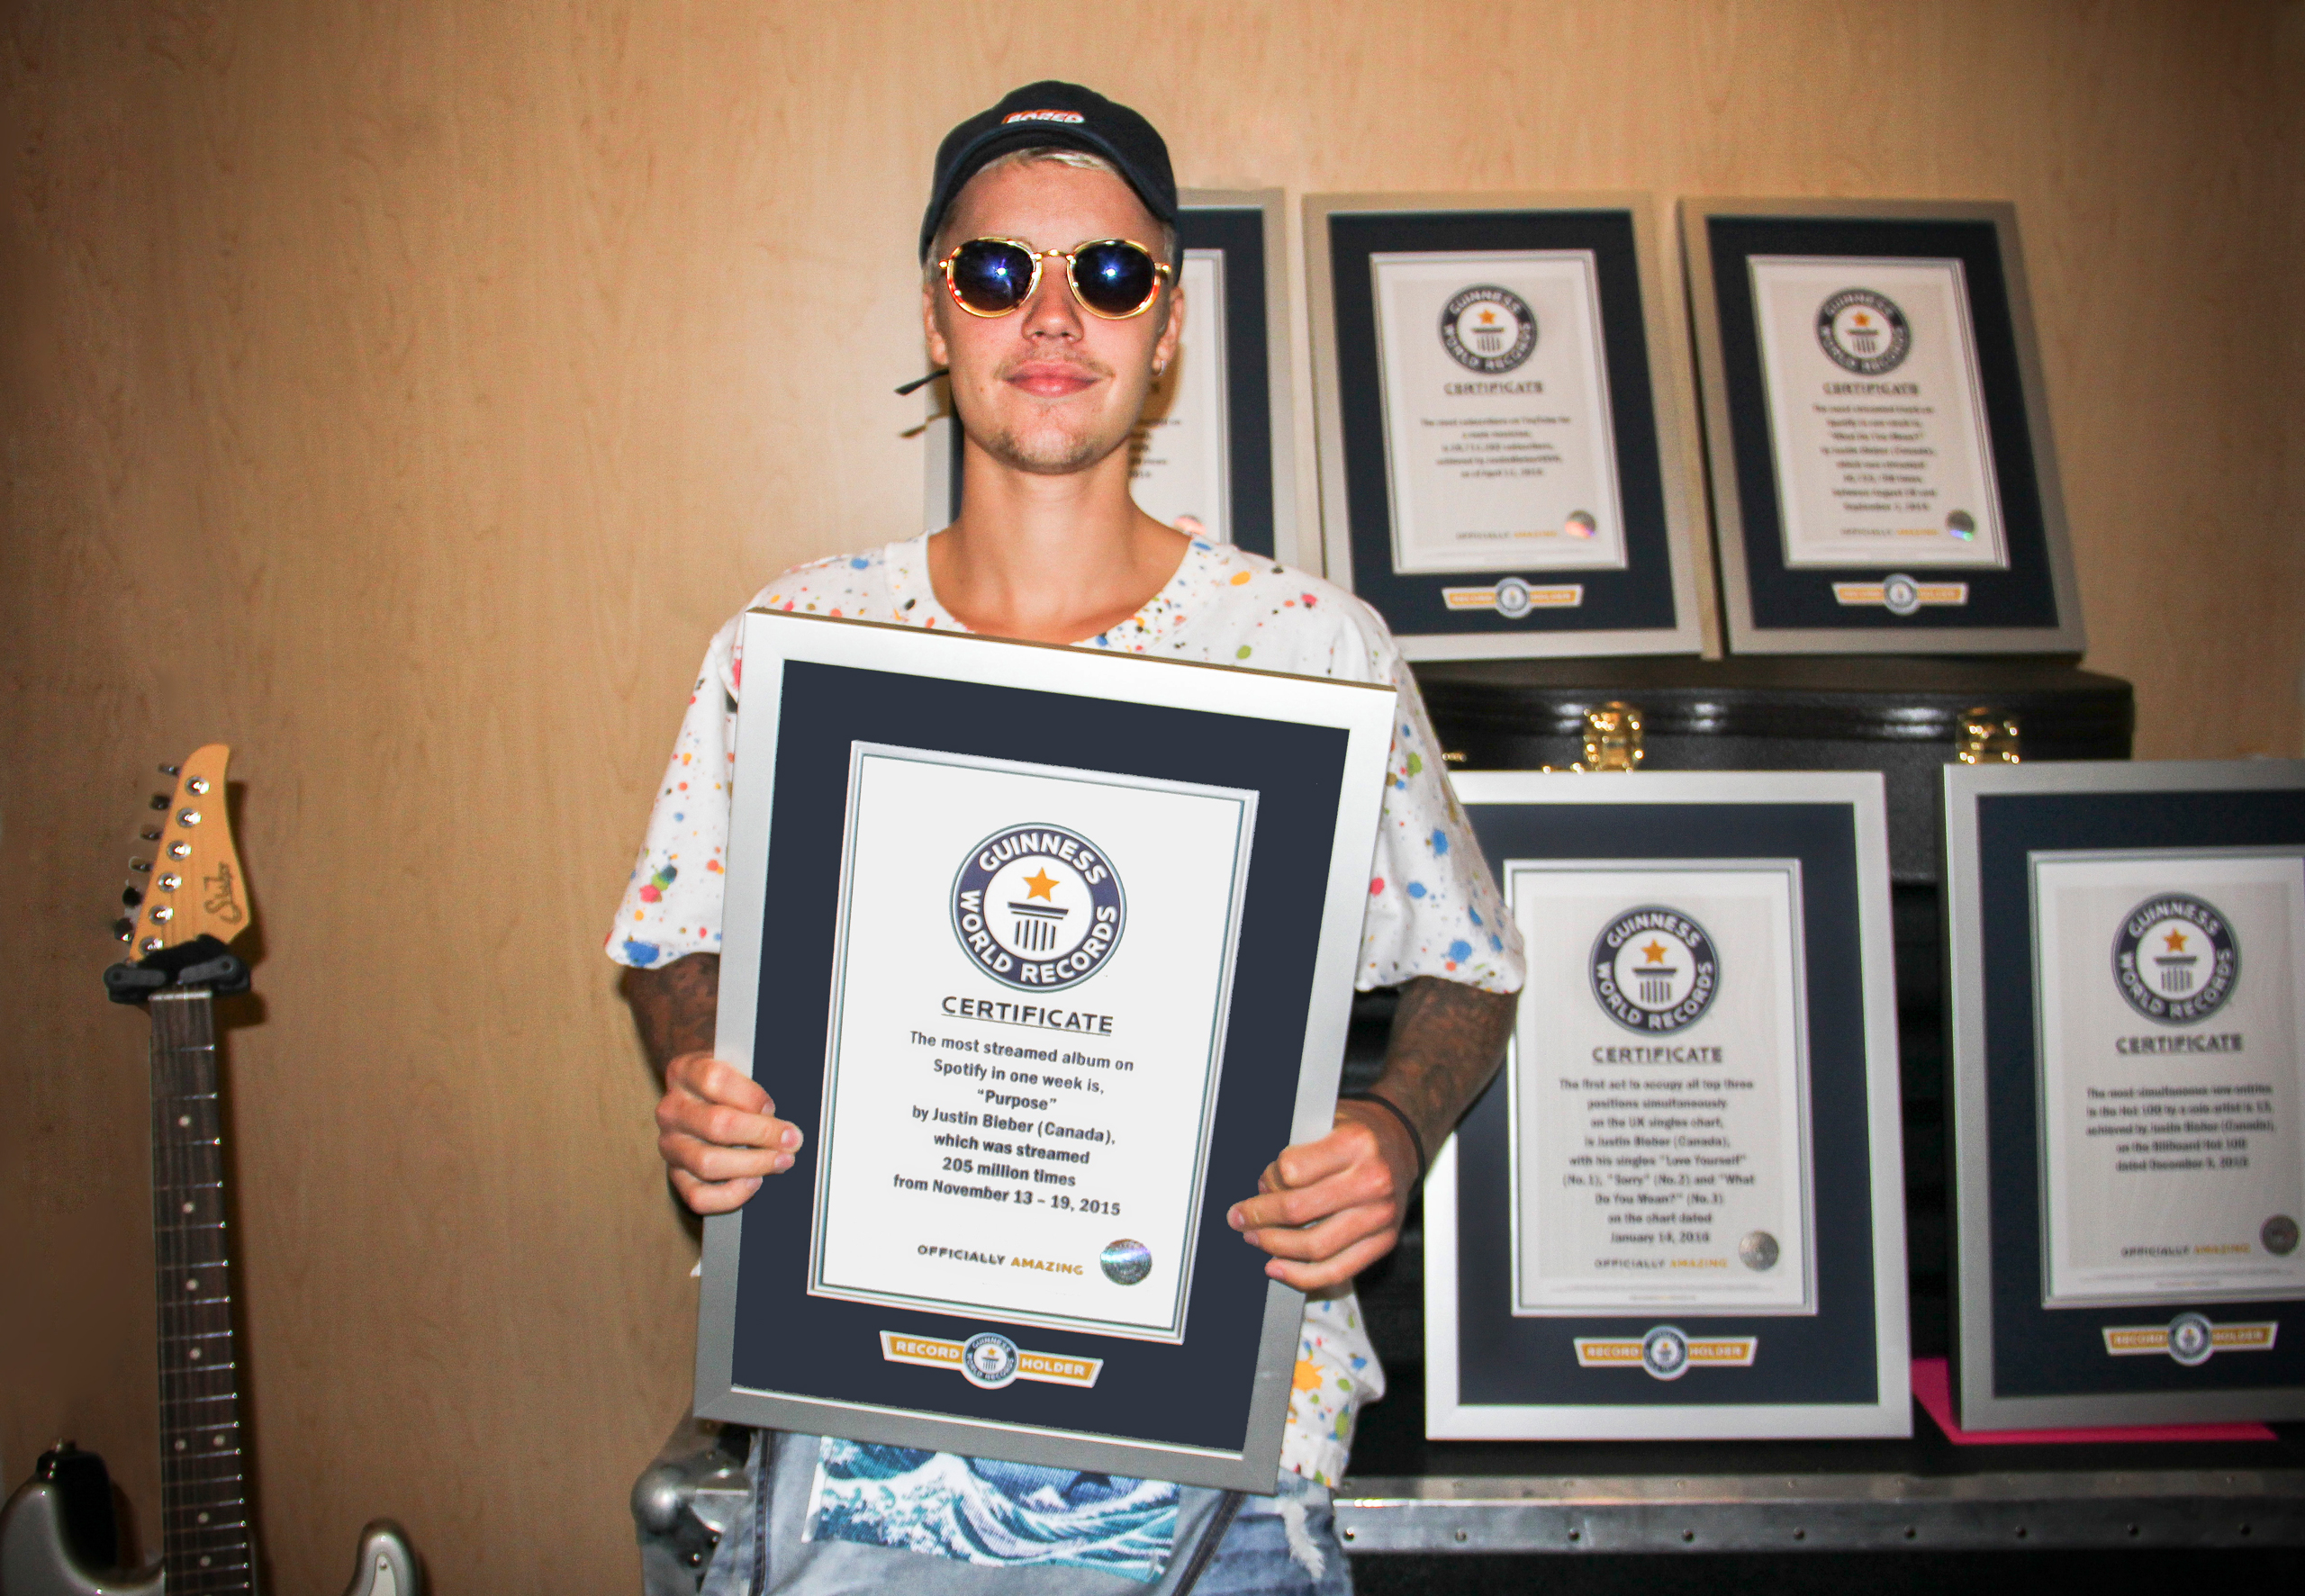 Guinness World Records recently presented Justin Bieber with certificates celebrating his record-breaking achievements before one of his sold-out shows on the Purpose World Tour at Madison Square Garden in New York City.